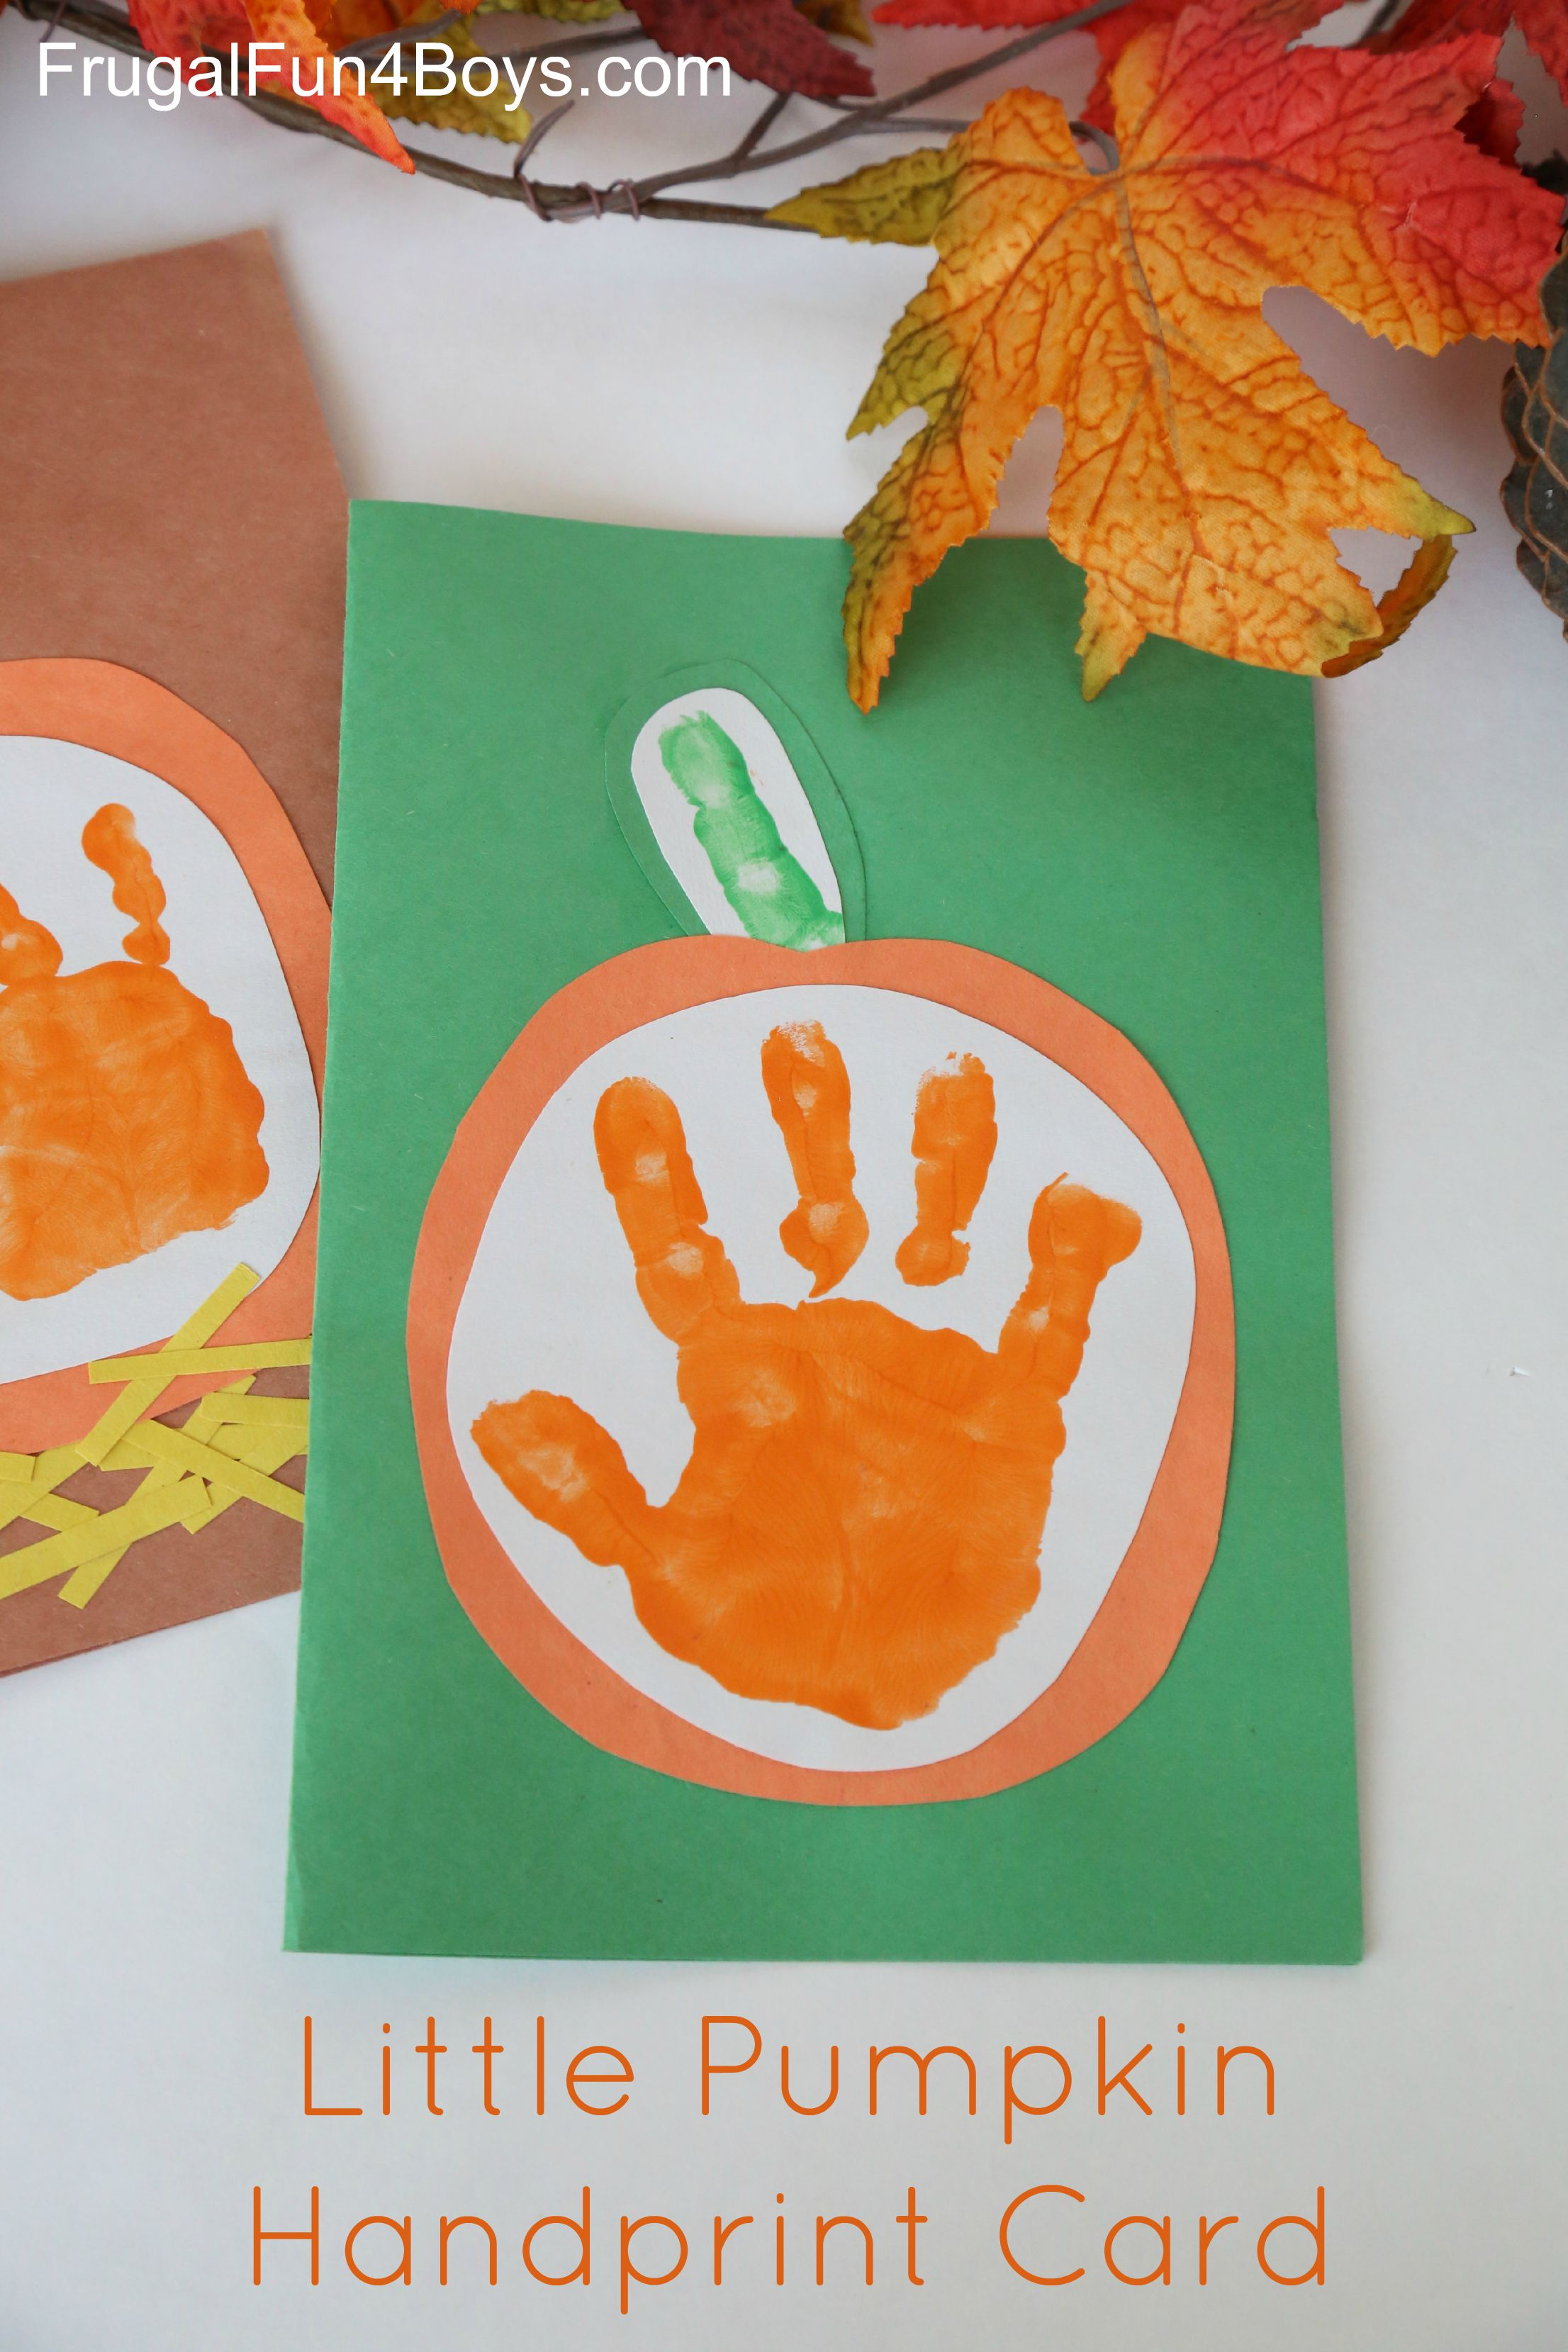 Thanksgiving Craft Ideas For Kids Part - 46: 33 Easy Thanksgiving Crafts For Kids - Thanksgiving DIY Ideas For Children